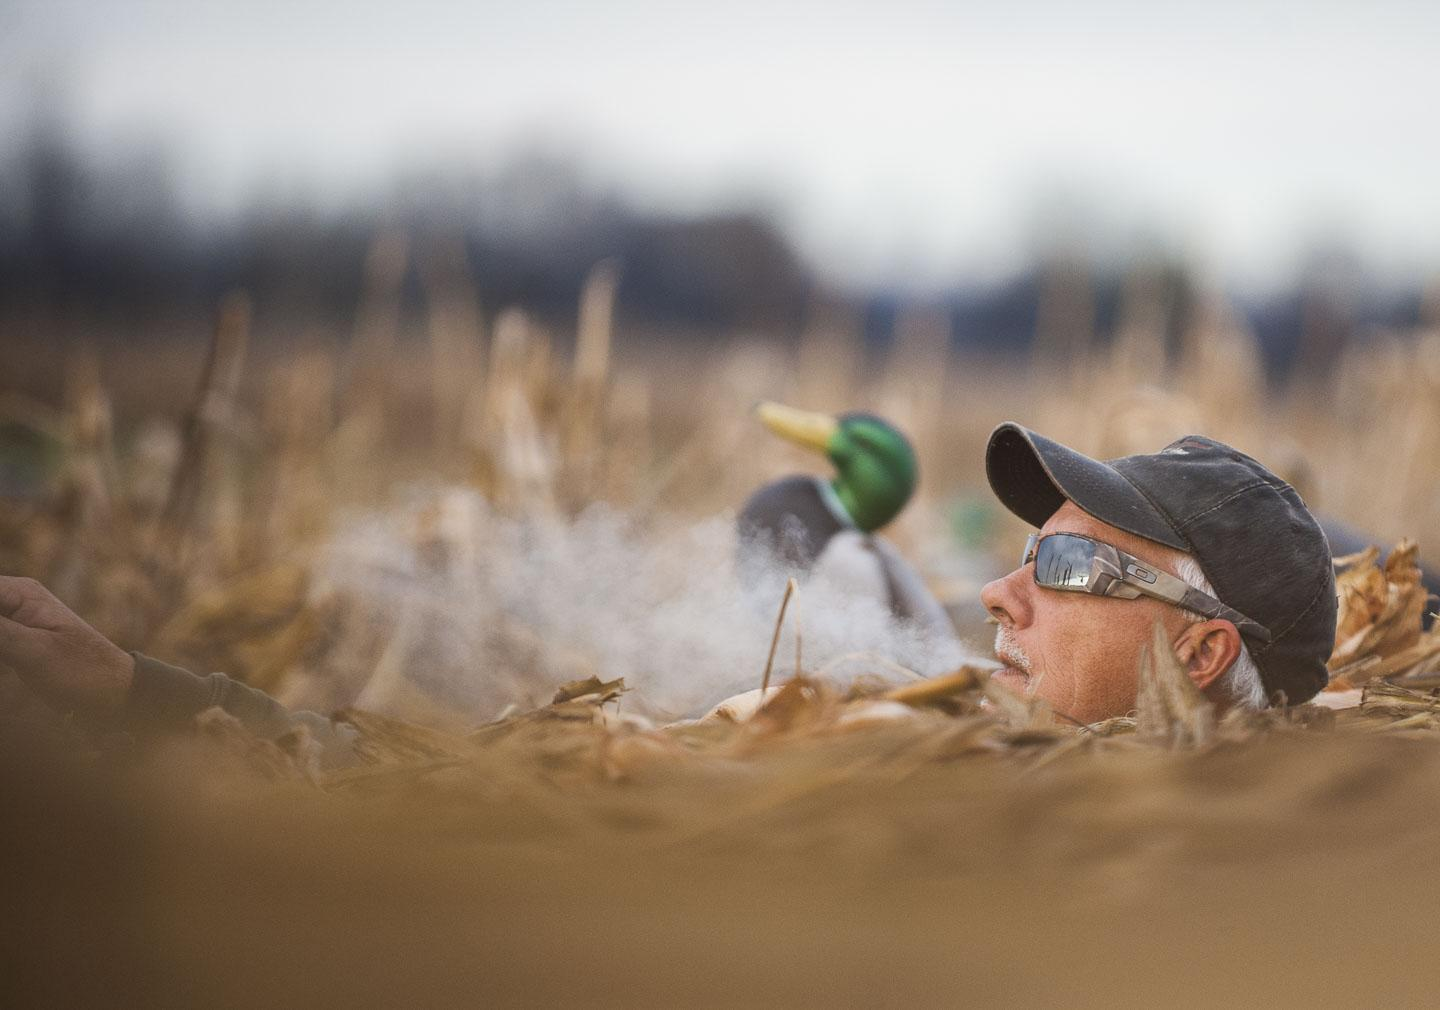 Grassy Lake Hunting Club guide Duane Smith smokes a cigarette while watching for incoming ducks Wednesday, Nov. 30, 2016, during a Wounded Warriors duck hunt in Jonesboro. (Ryan Michalesko   @photosbylesko)